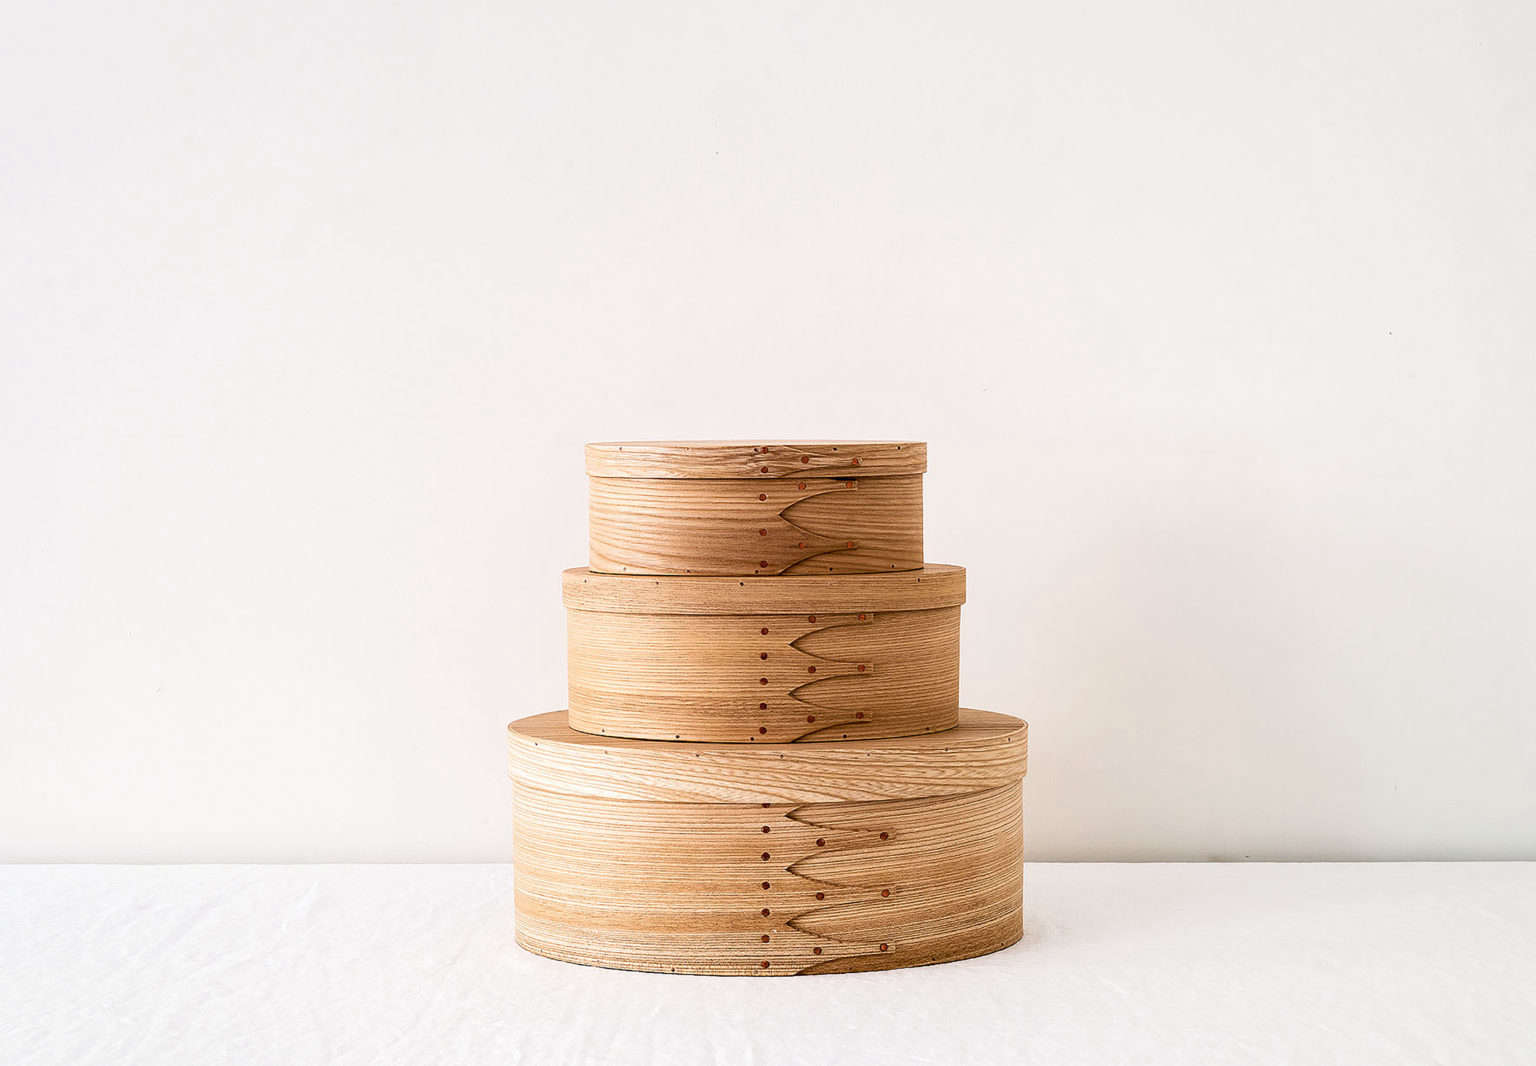 Shaker Nesting Boxes as part of the Remodelista Storage 75 Series